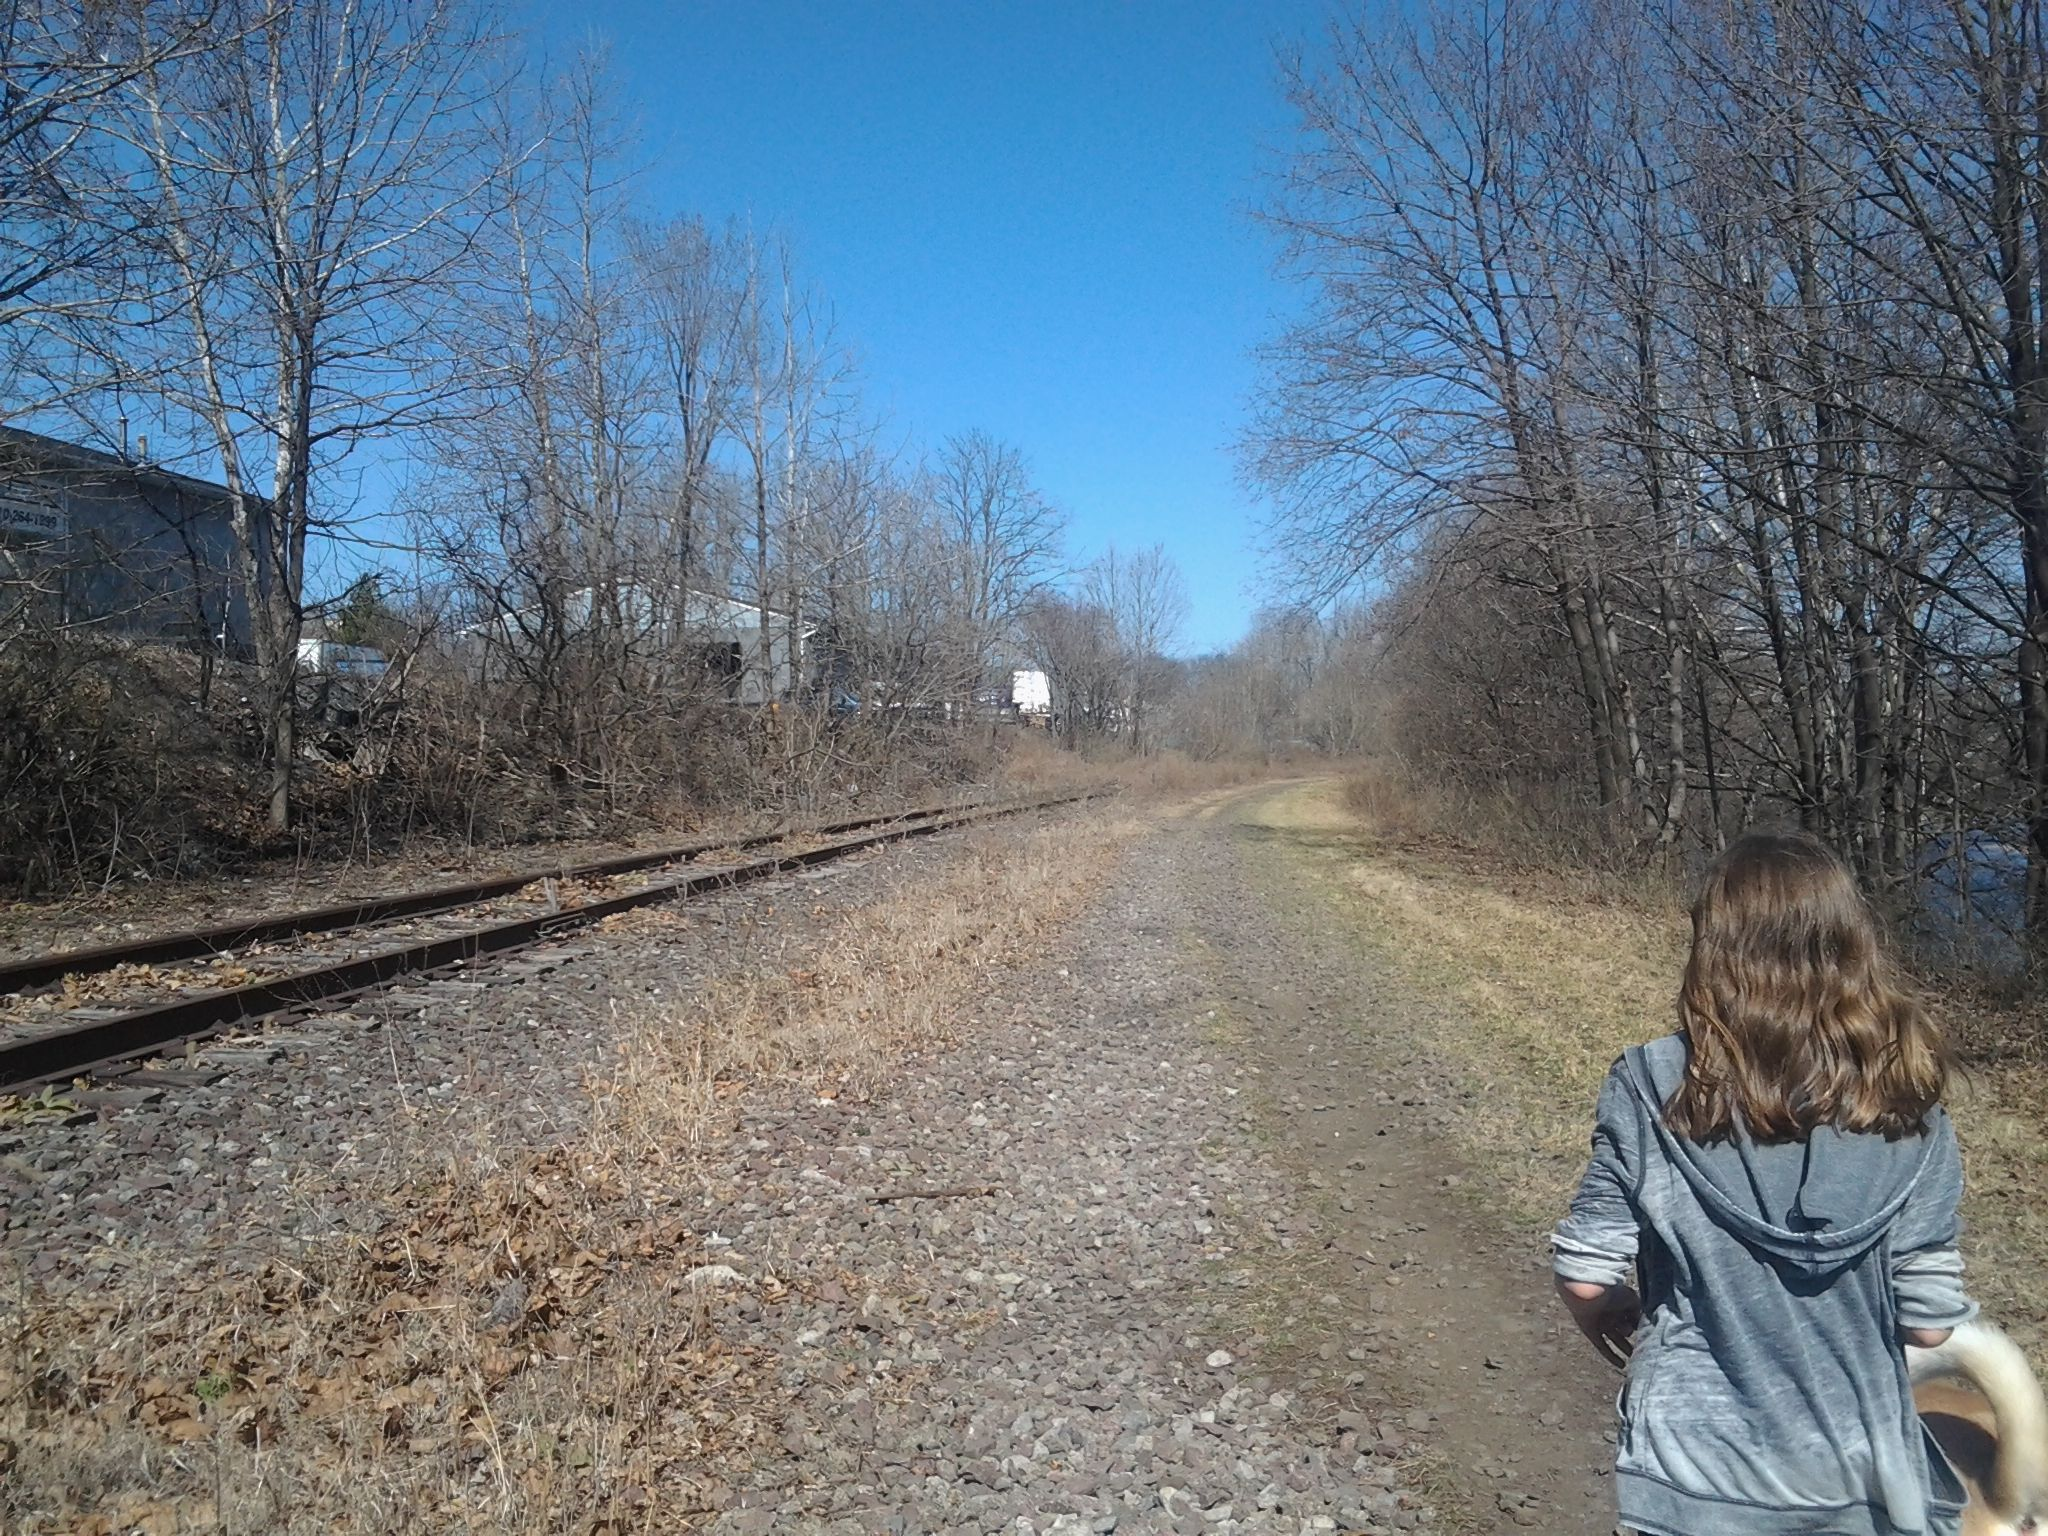 Visiting PA, About A Year Ago. Walking Down Abandoned Train Tracks, Surrounded By Beautiful Landscape, Walking With My Best Friend Gabby. I REALLY Miss Her. :c